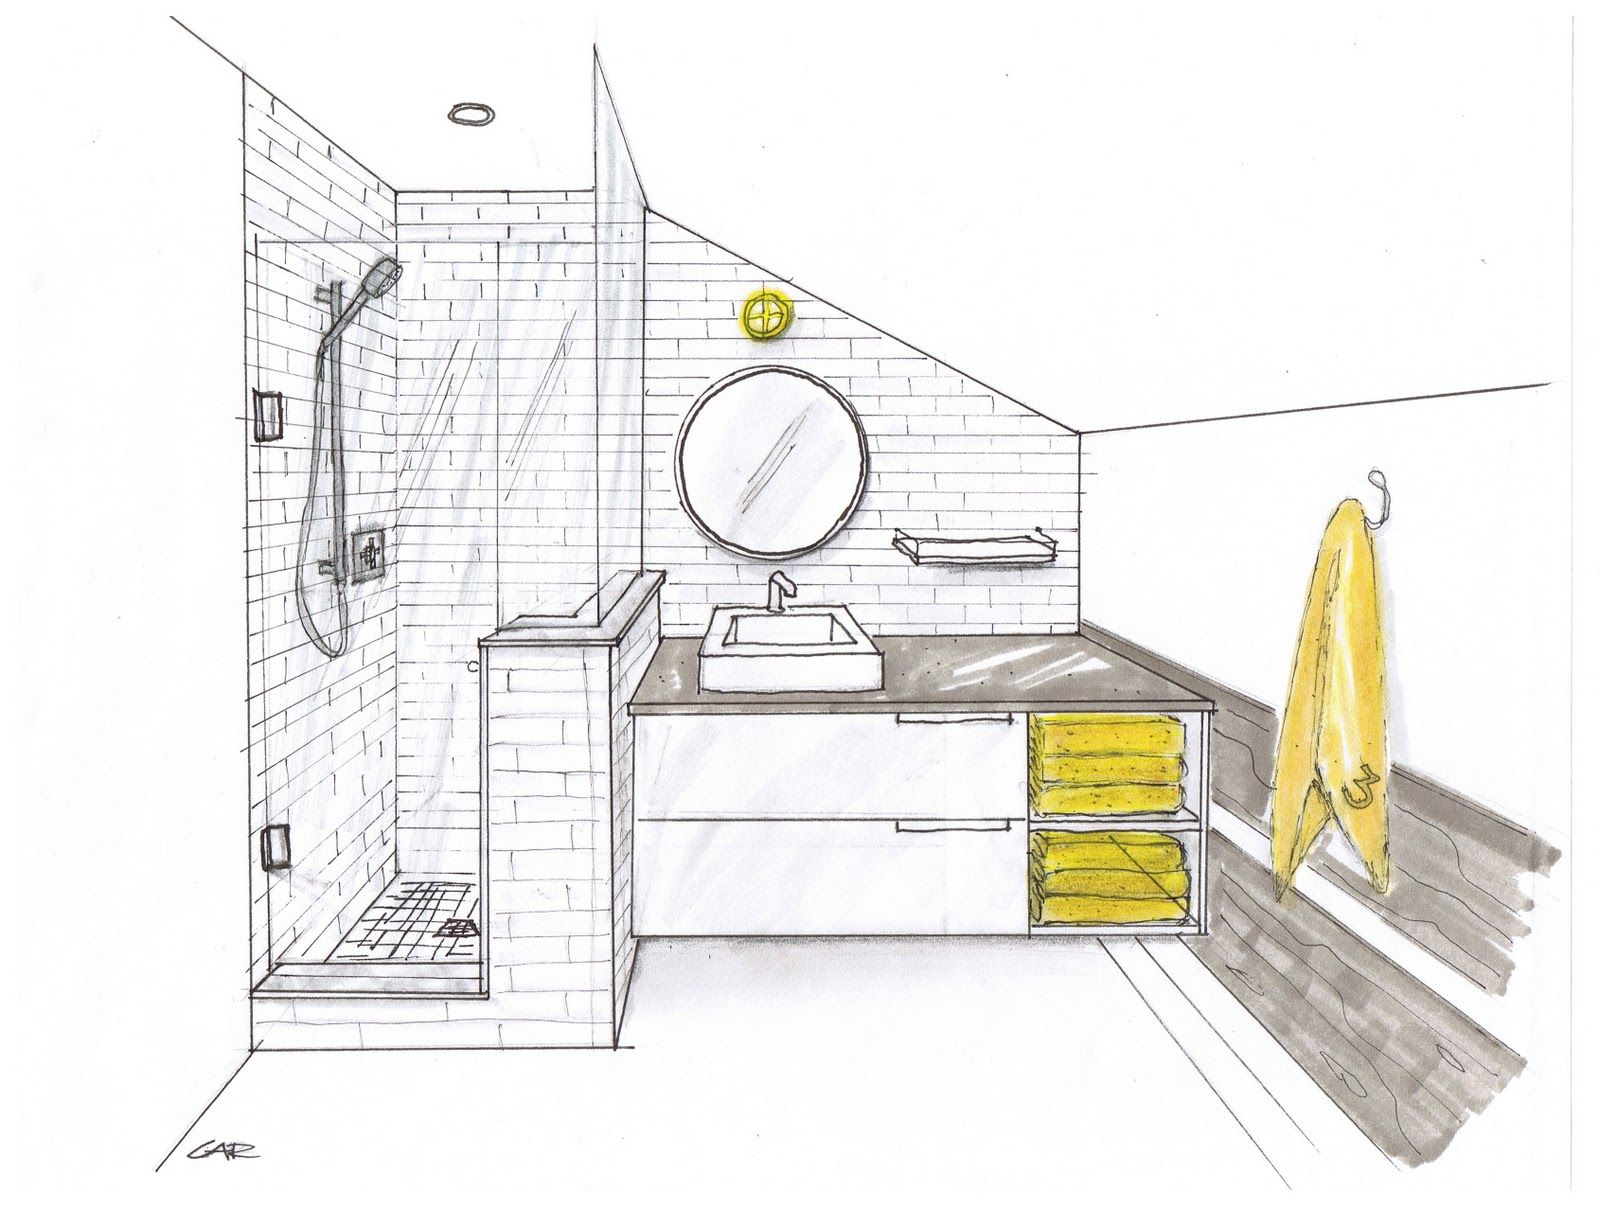 Bathroom sink drawing - Bathroom One Point Perspective Google Search